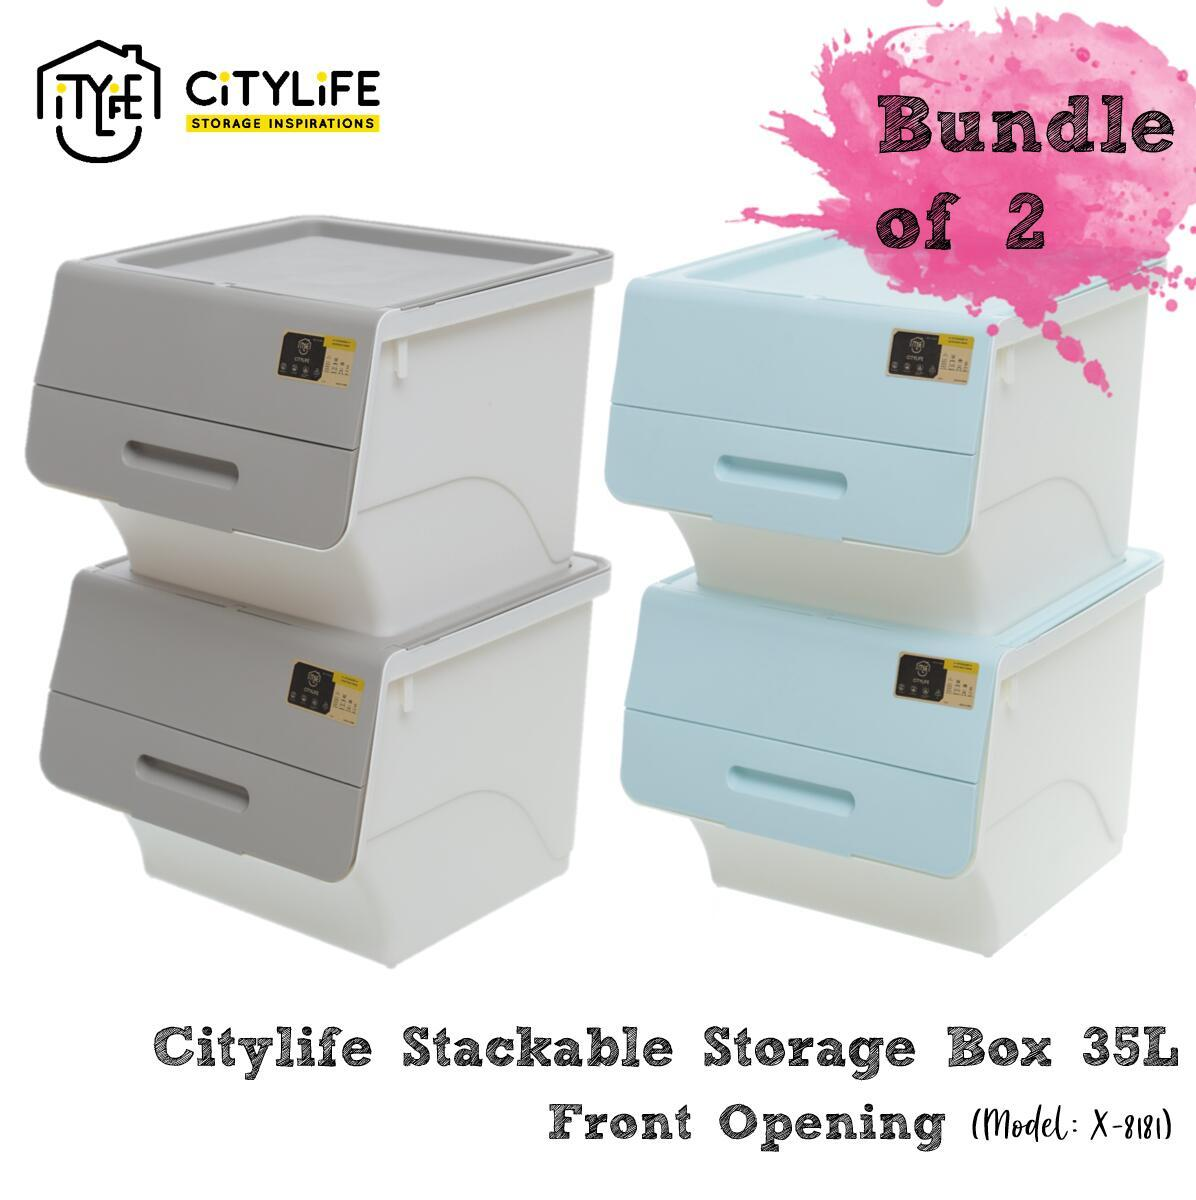 Citylife Stackable Storage Box with Front Opening 35L- BUNDLE OF 2